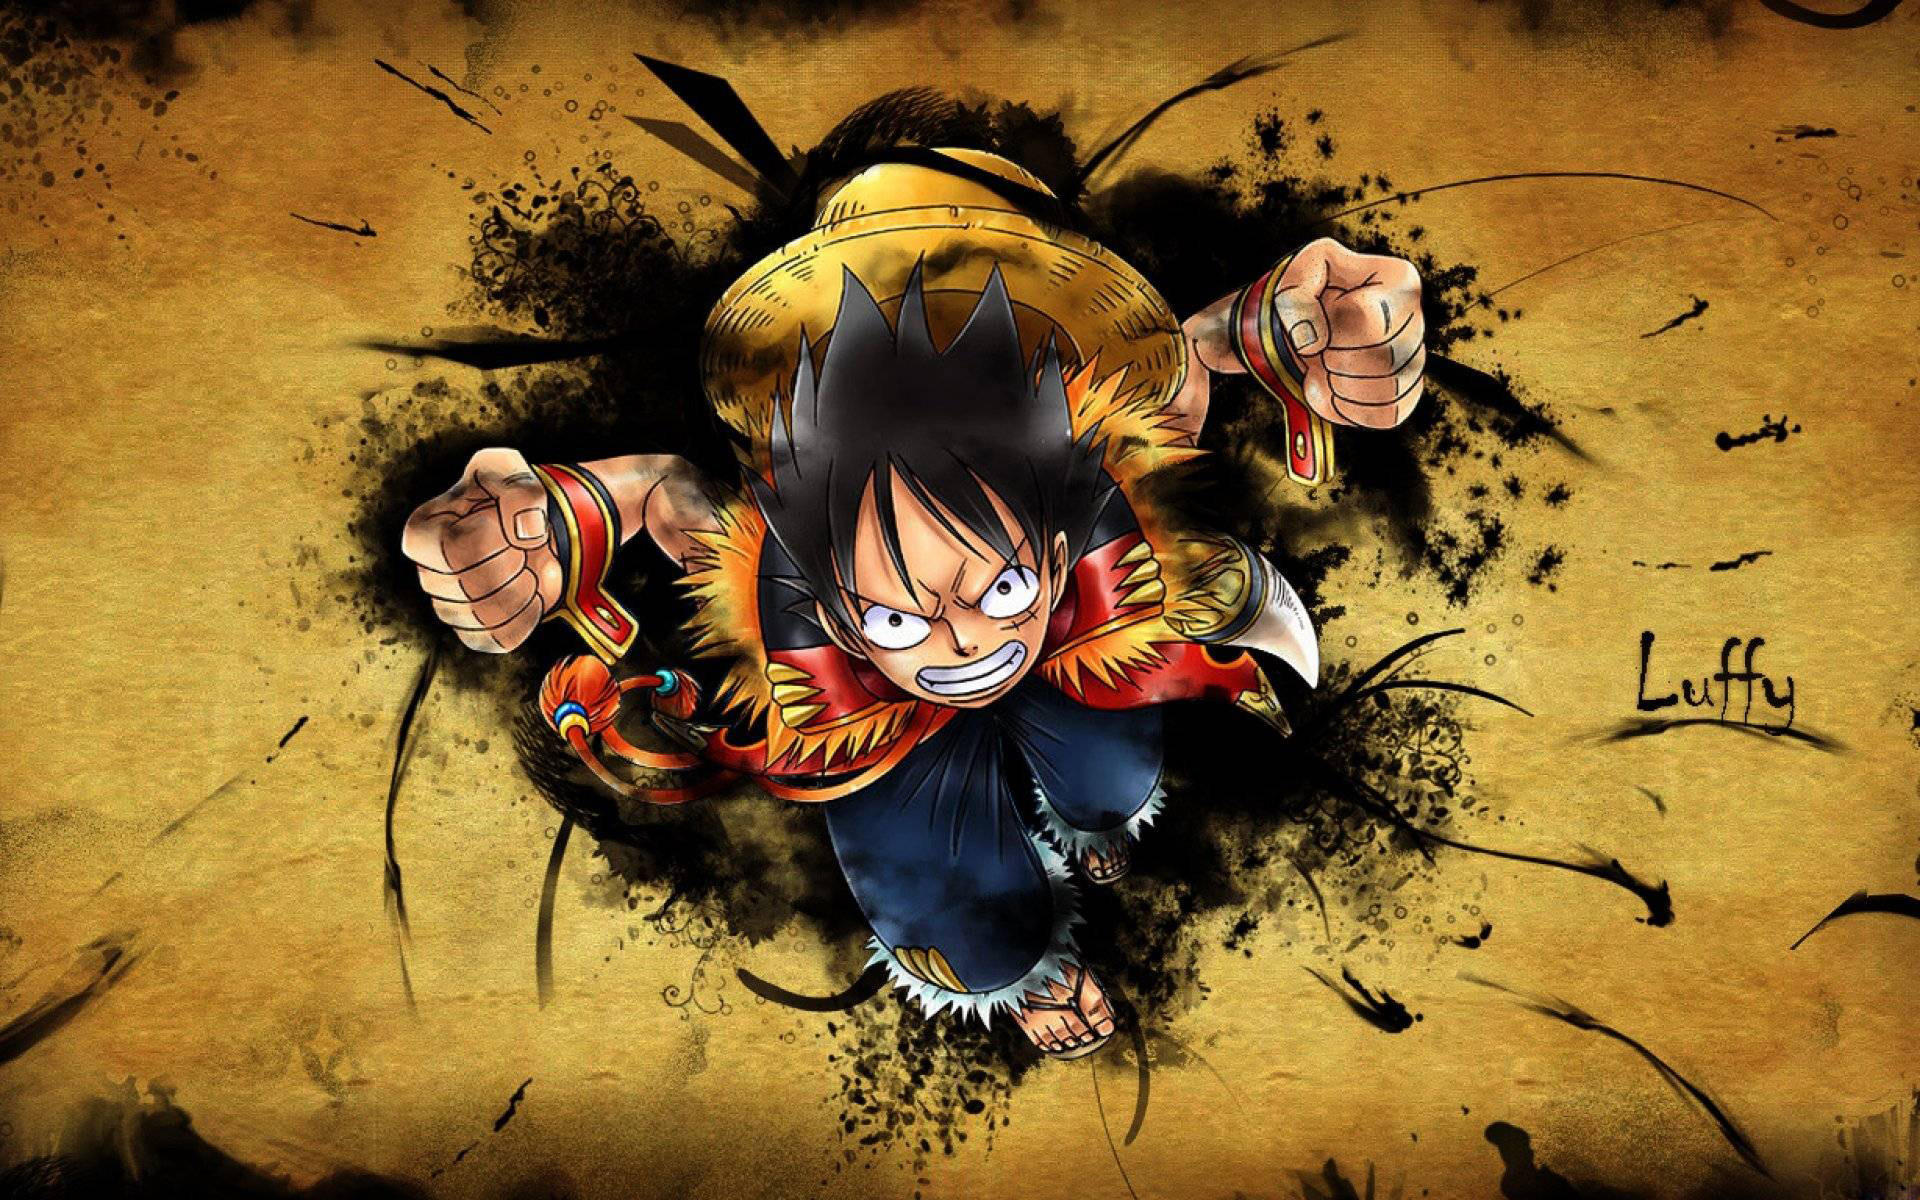 One Piece Luffy Wallpaper High Quality.